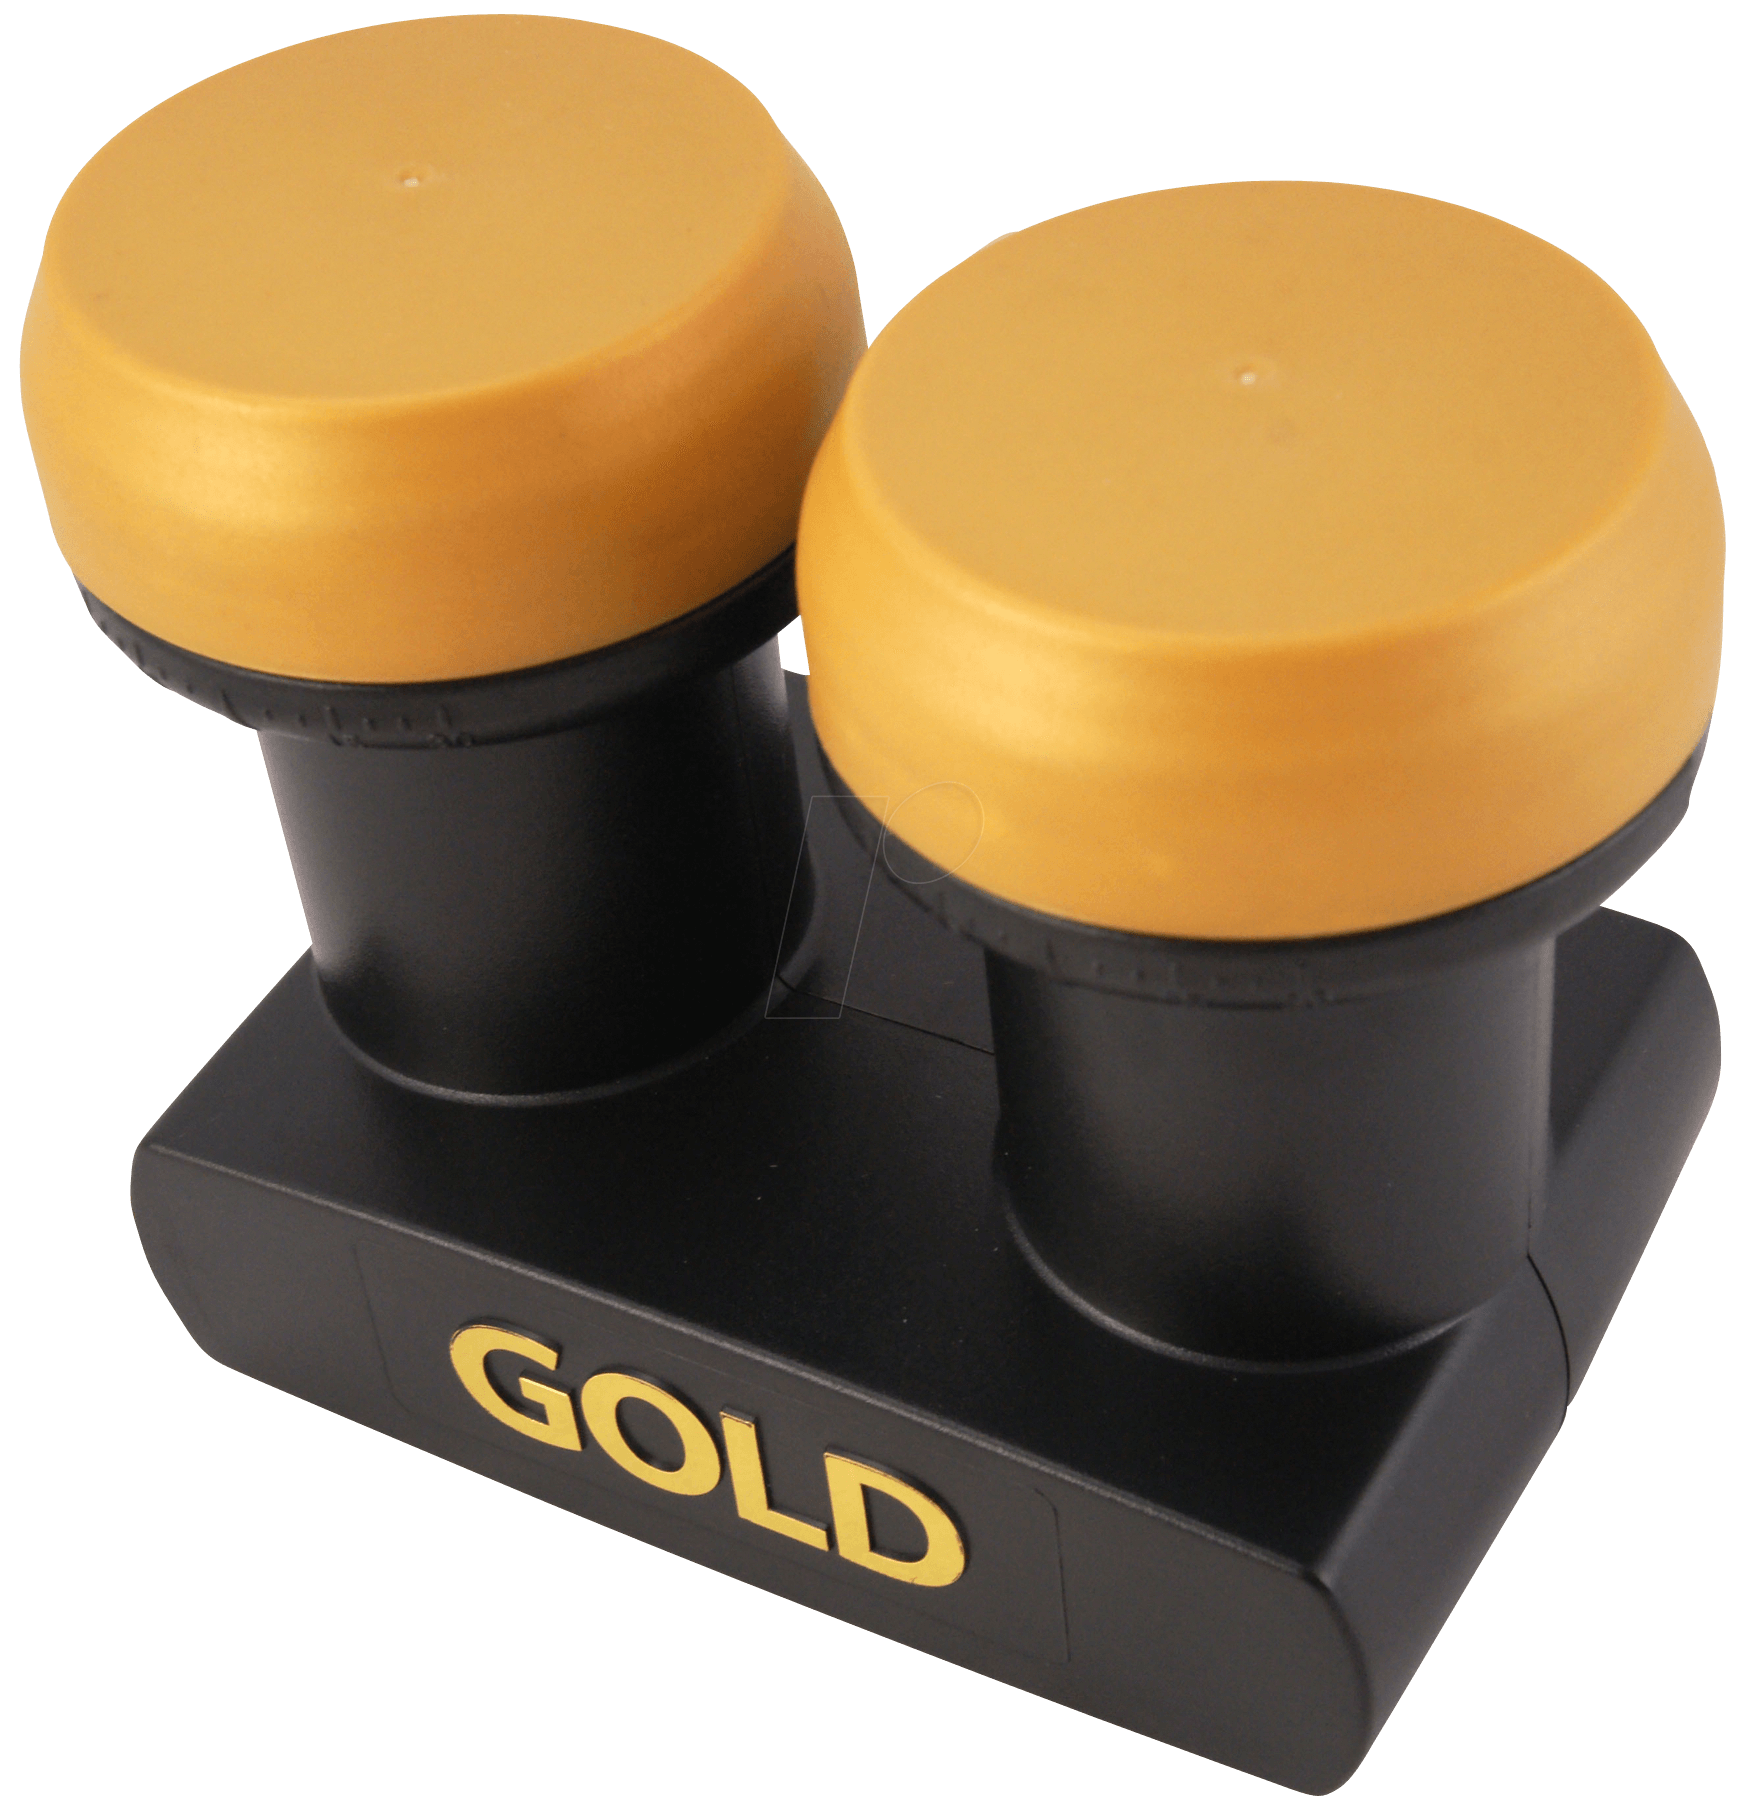 https://cdn-reichelt.de/bilder/web/xxl_ws/F100/MONOBLOCK_SINGLE_GOLD.png